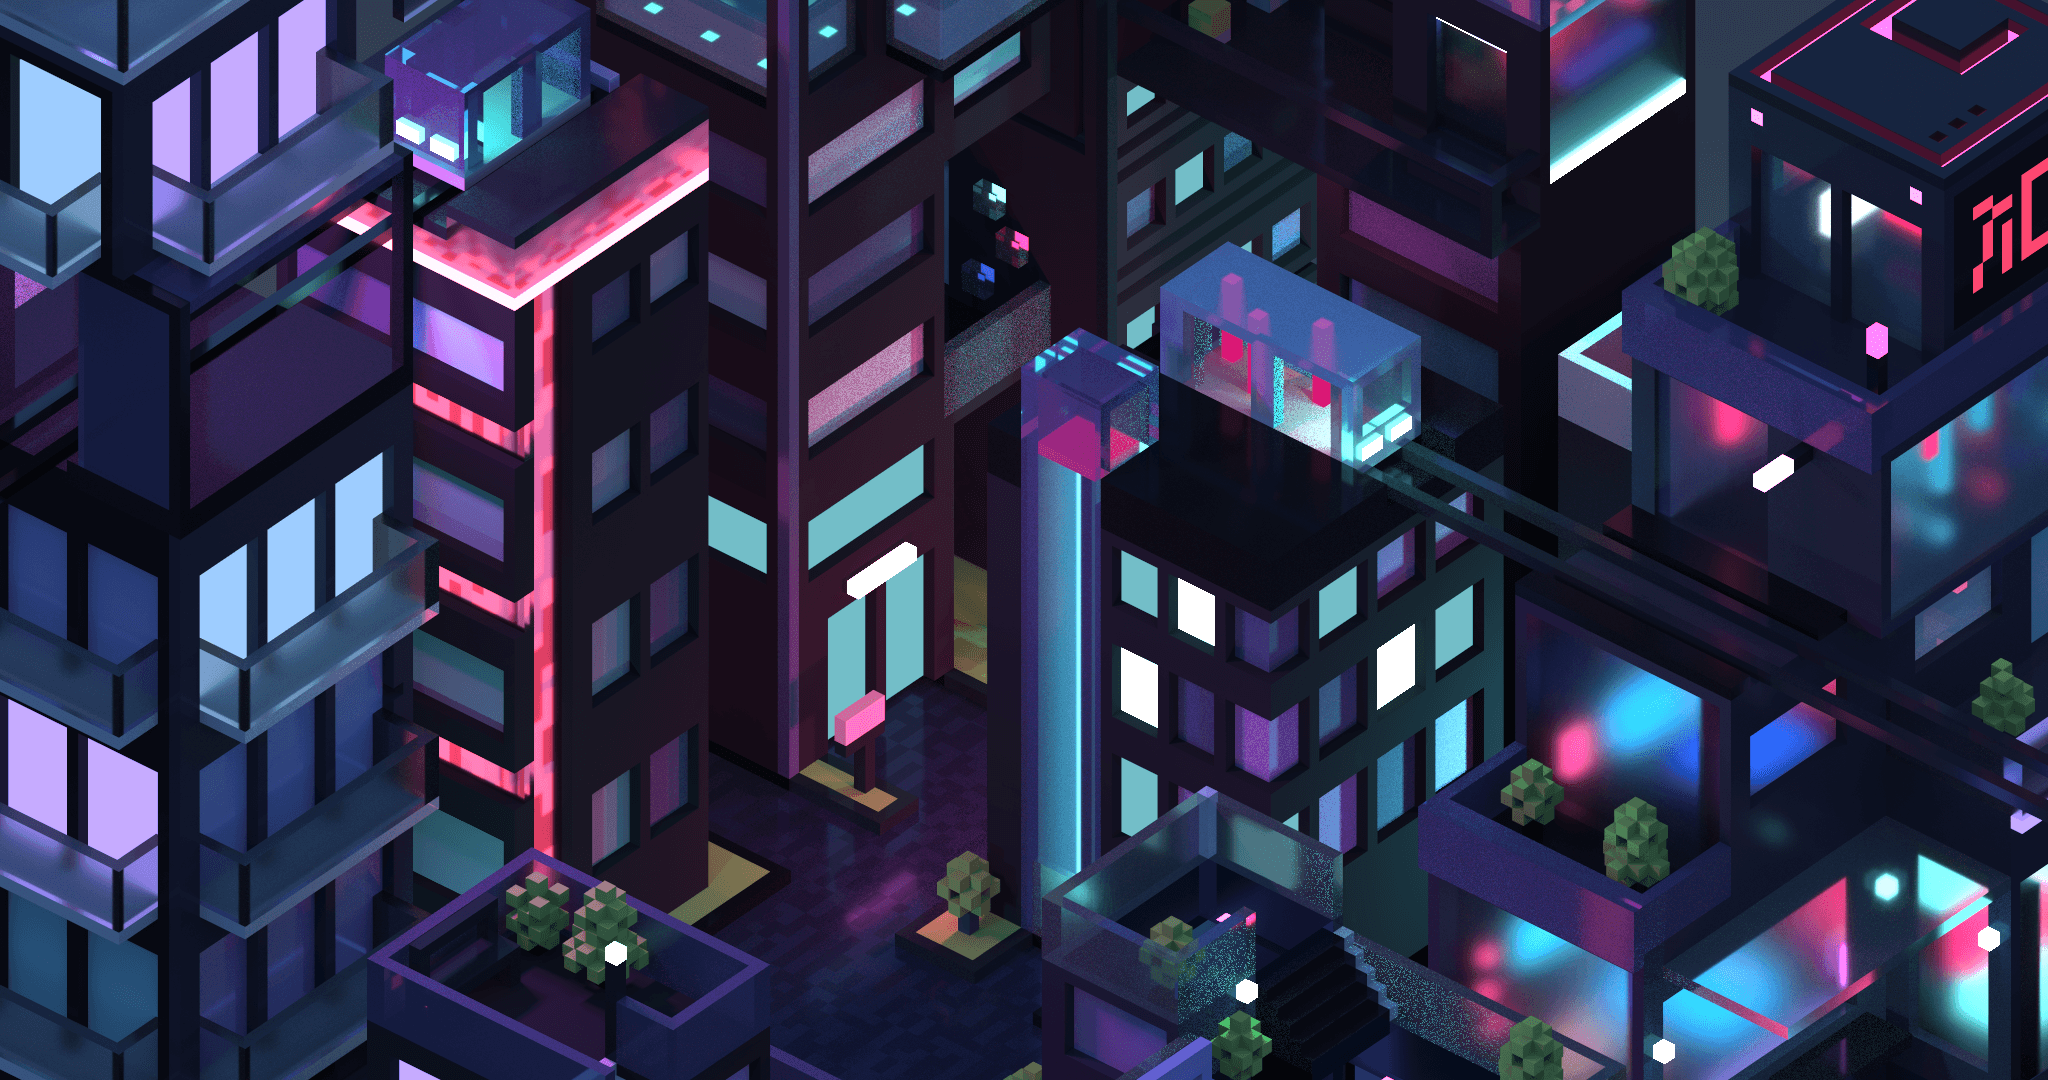 3D isometric city by night by Meg Wehrlen showing a square based city of high rise building with a synthwave/vapowave feel. Software is MagicaVoxel, 3d illustration.